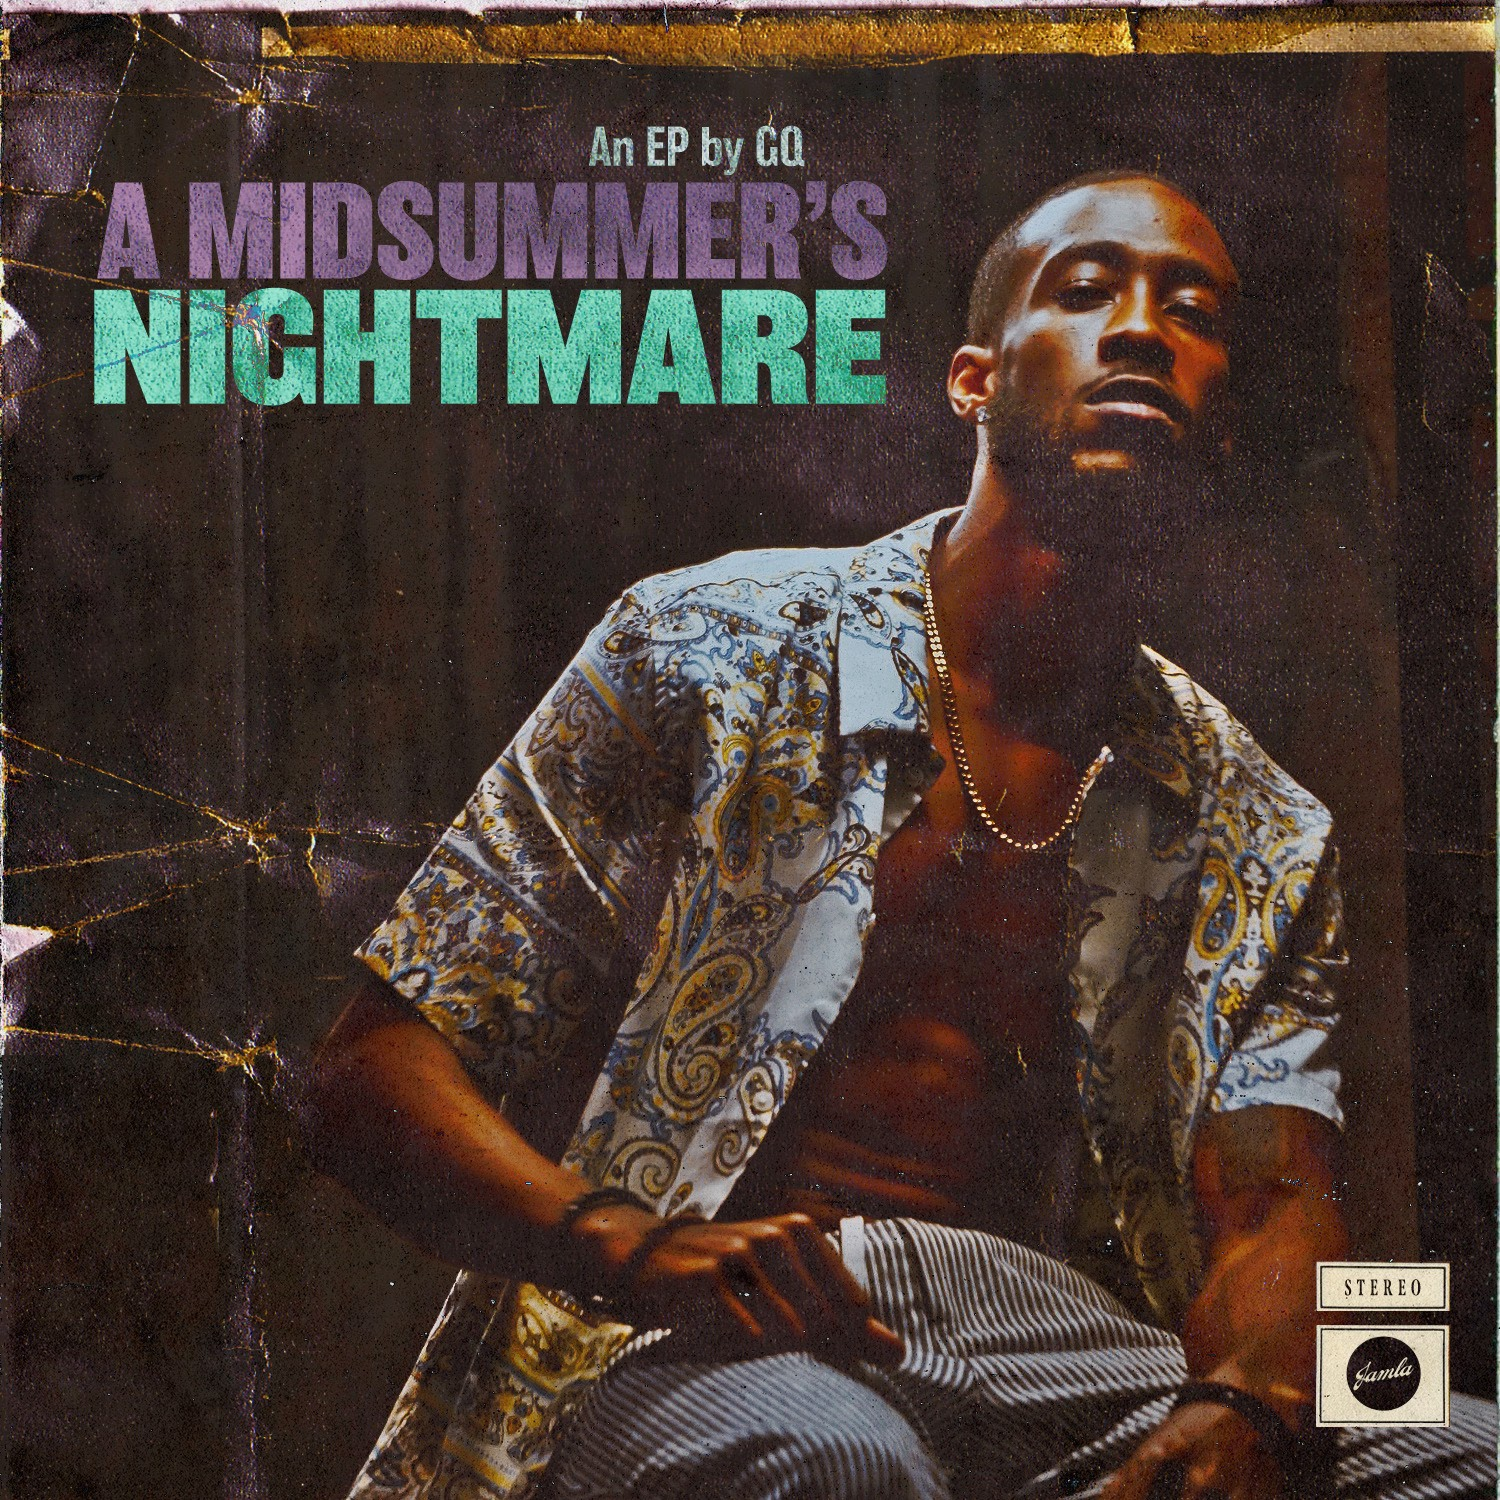 GQ Releases 'A Midsummer's Nightmare' Produced by 9th Wonder